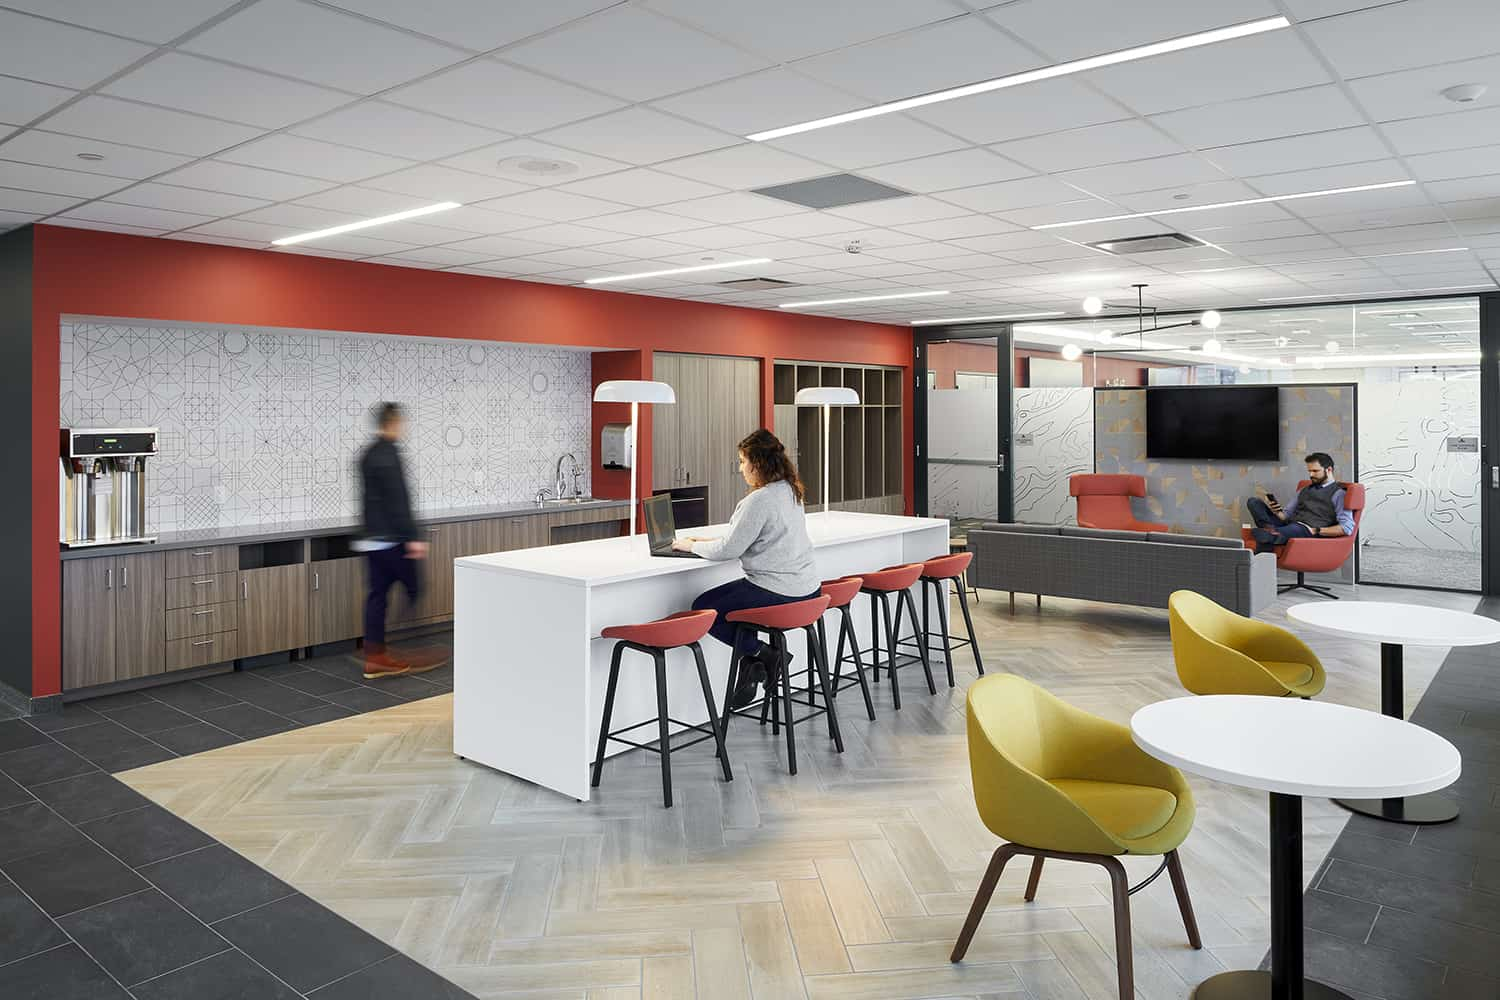 Staff flex space with seating options and branded color wall.